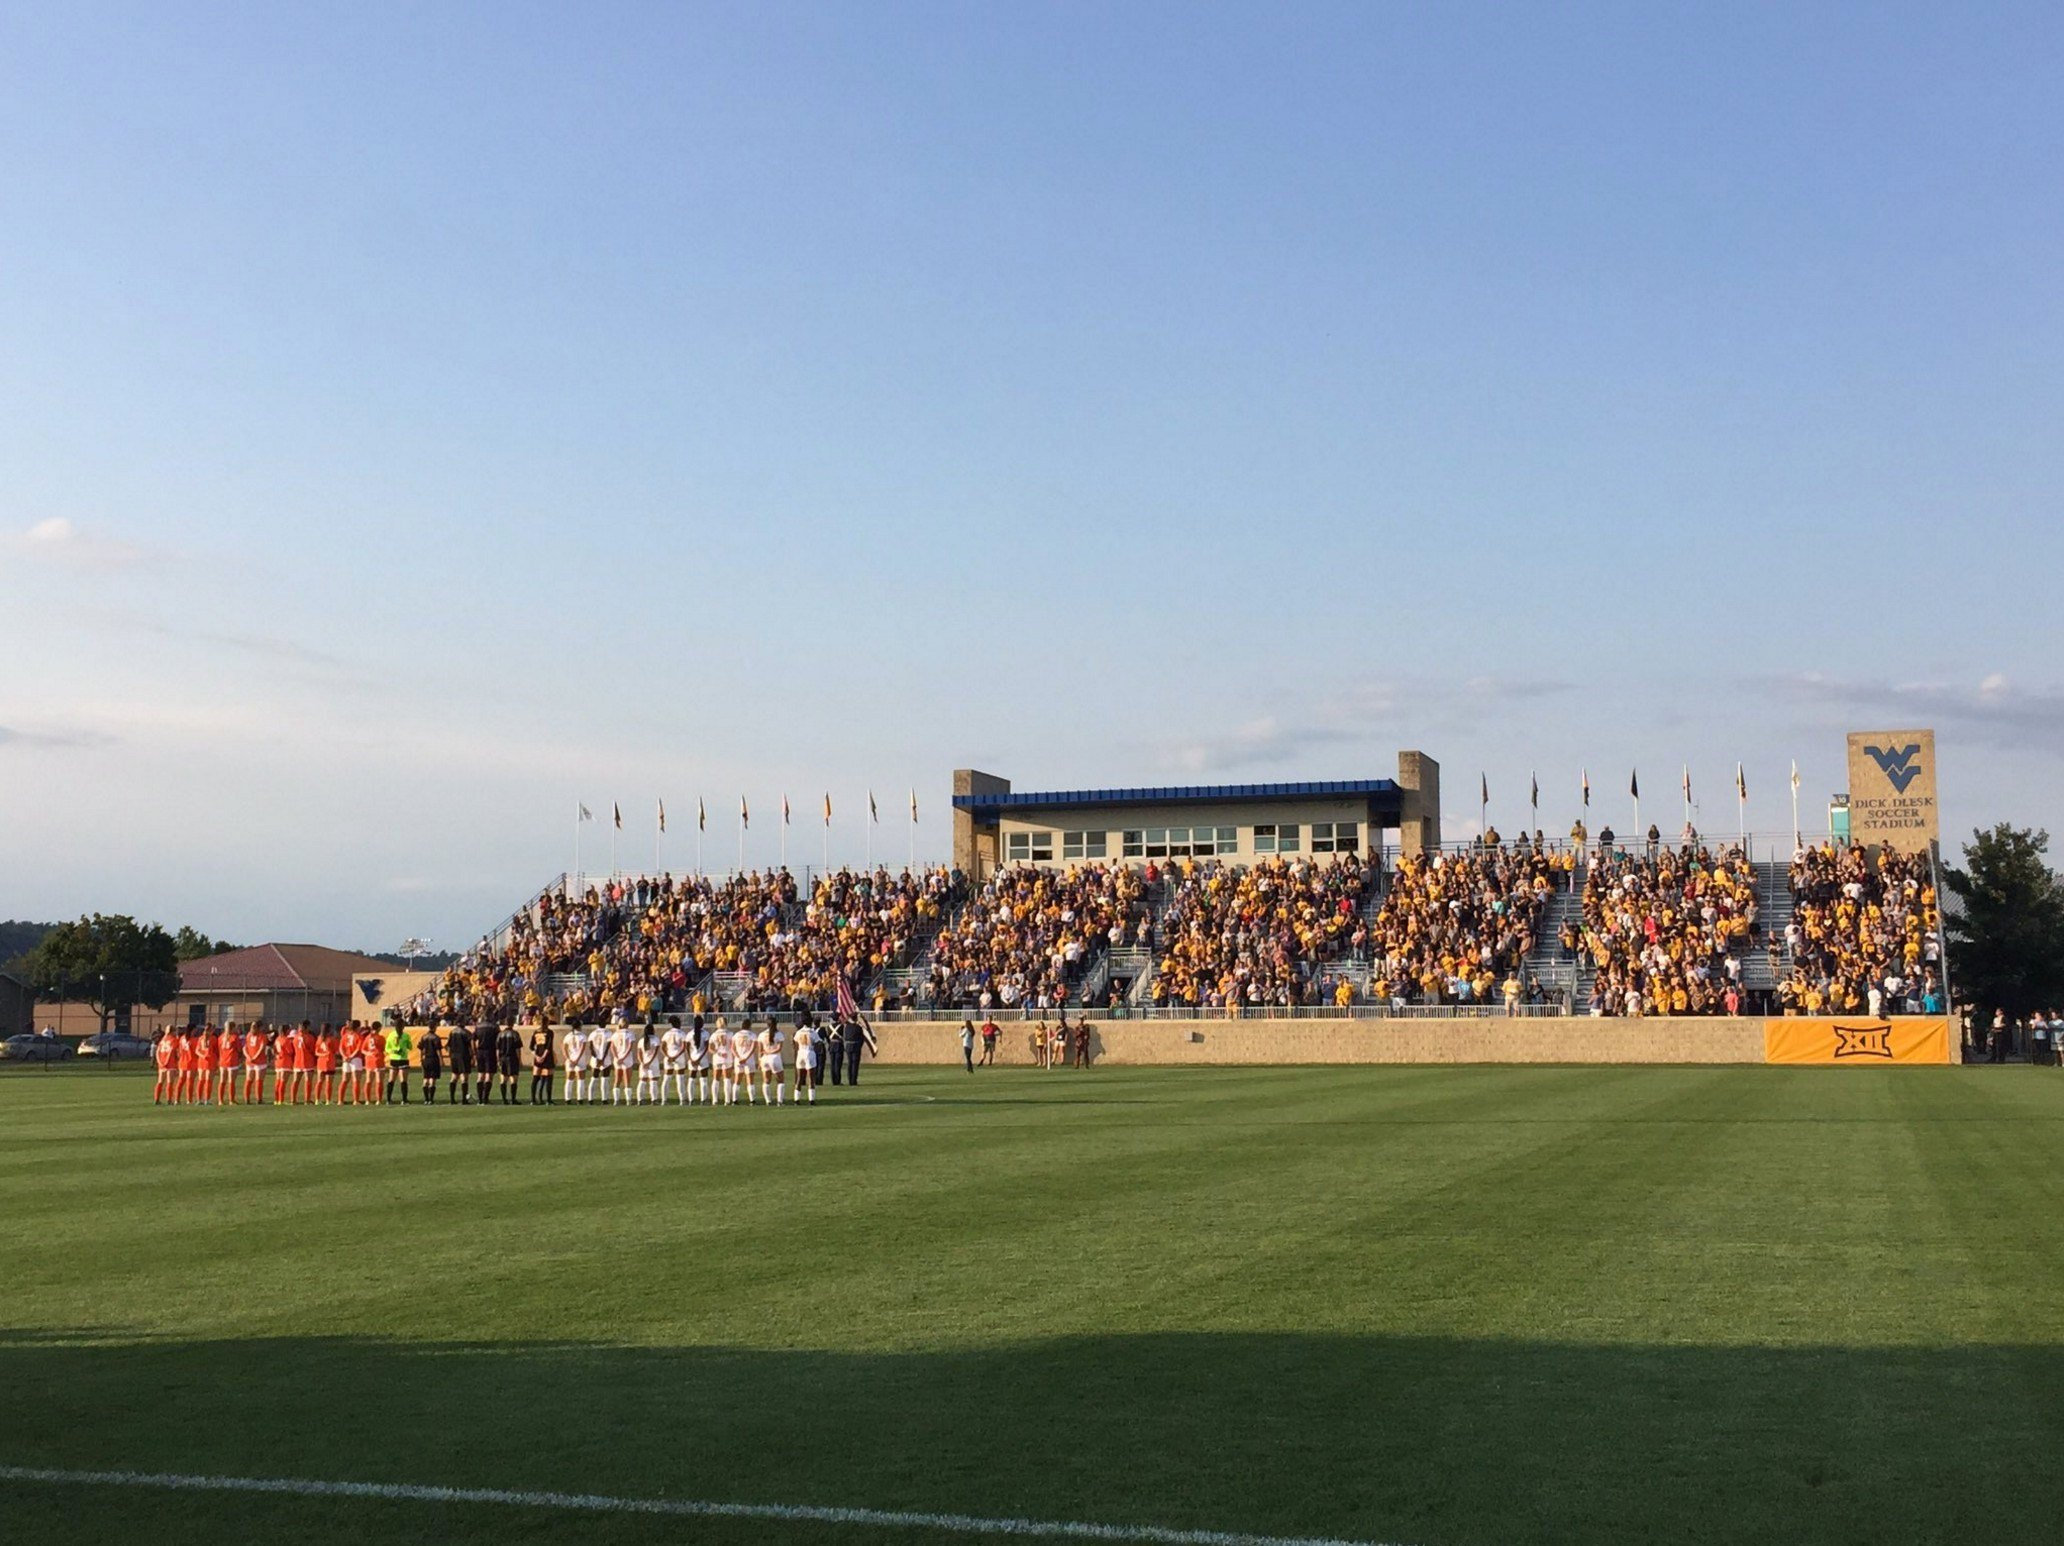 More than 2,400 fans came out to see the No. 1 WVU women's soccer team open the 2017 season.